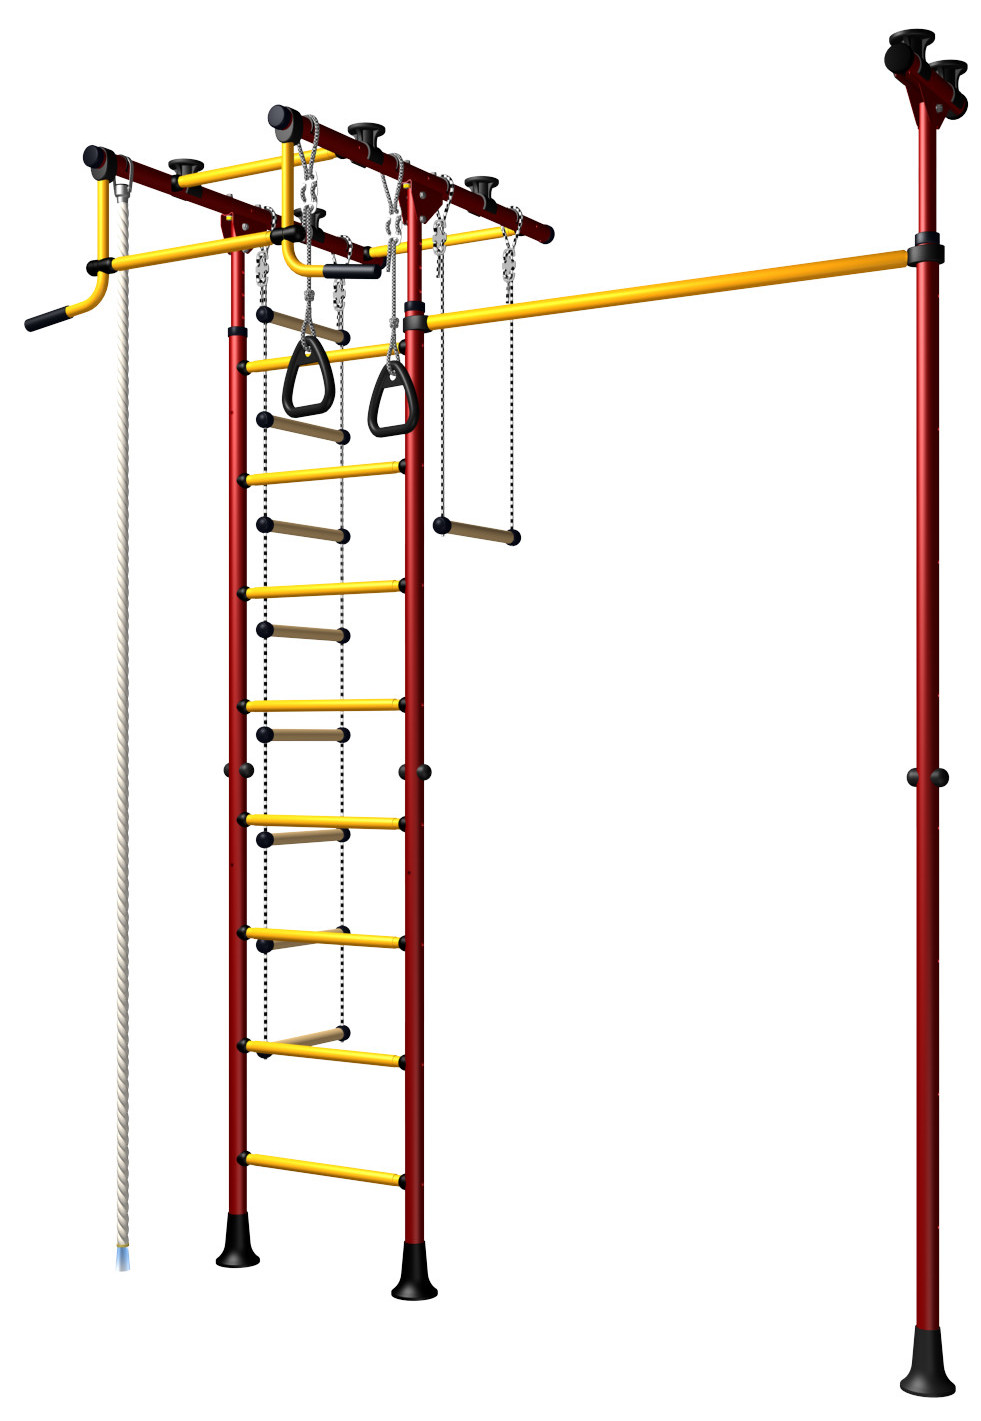 Indoor Sport Gym for Kids, model Comet-2.04 with wood rungs - Additional Pull Up Bar